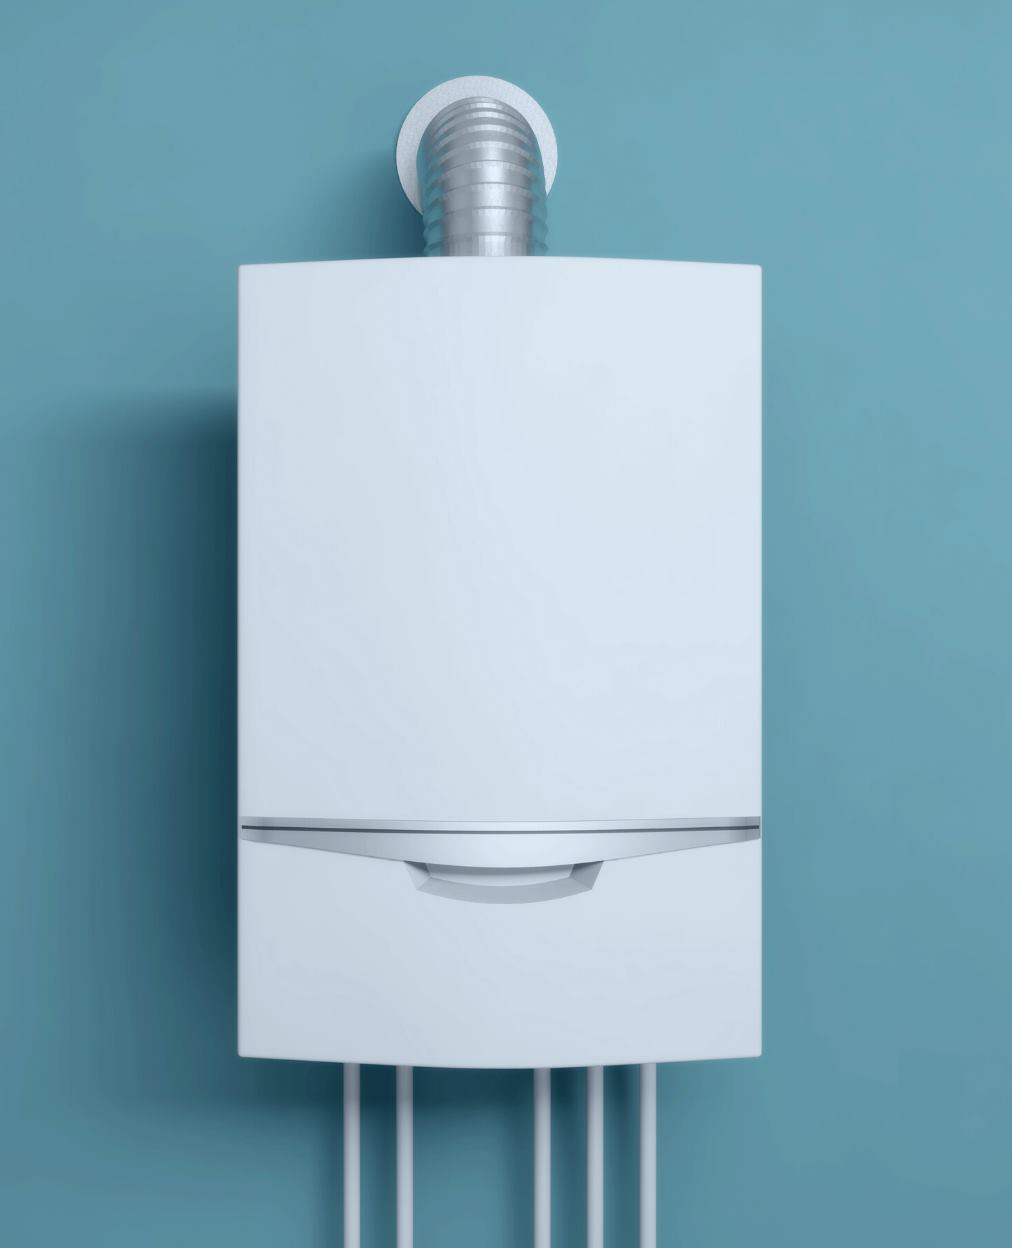 Heating & Hot Water services in London